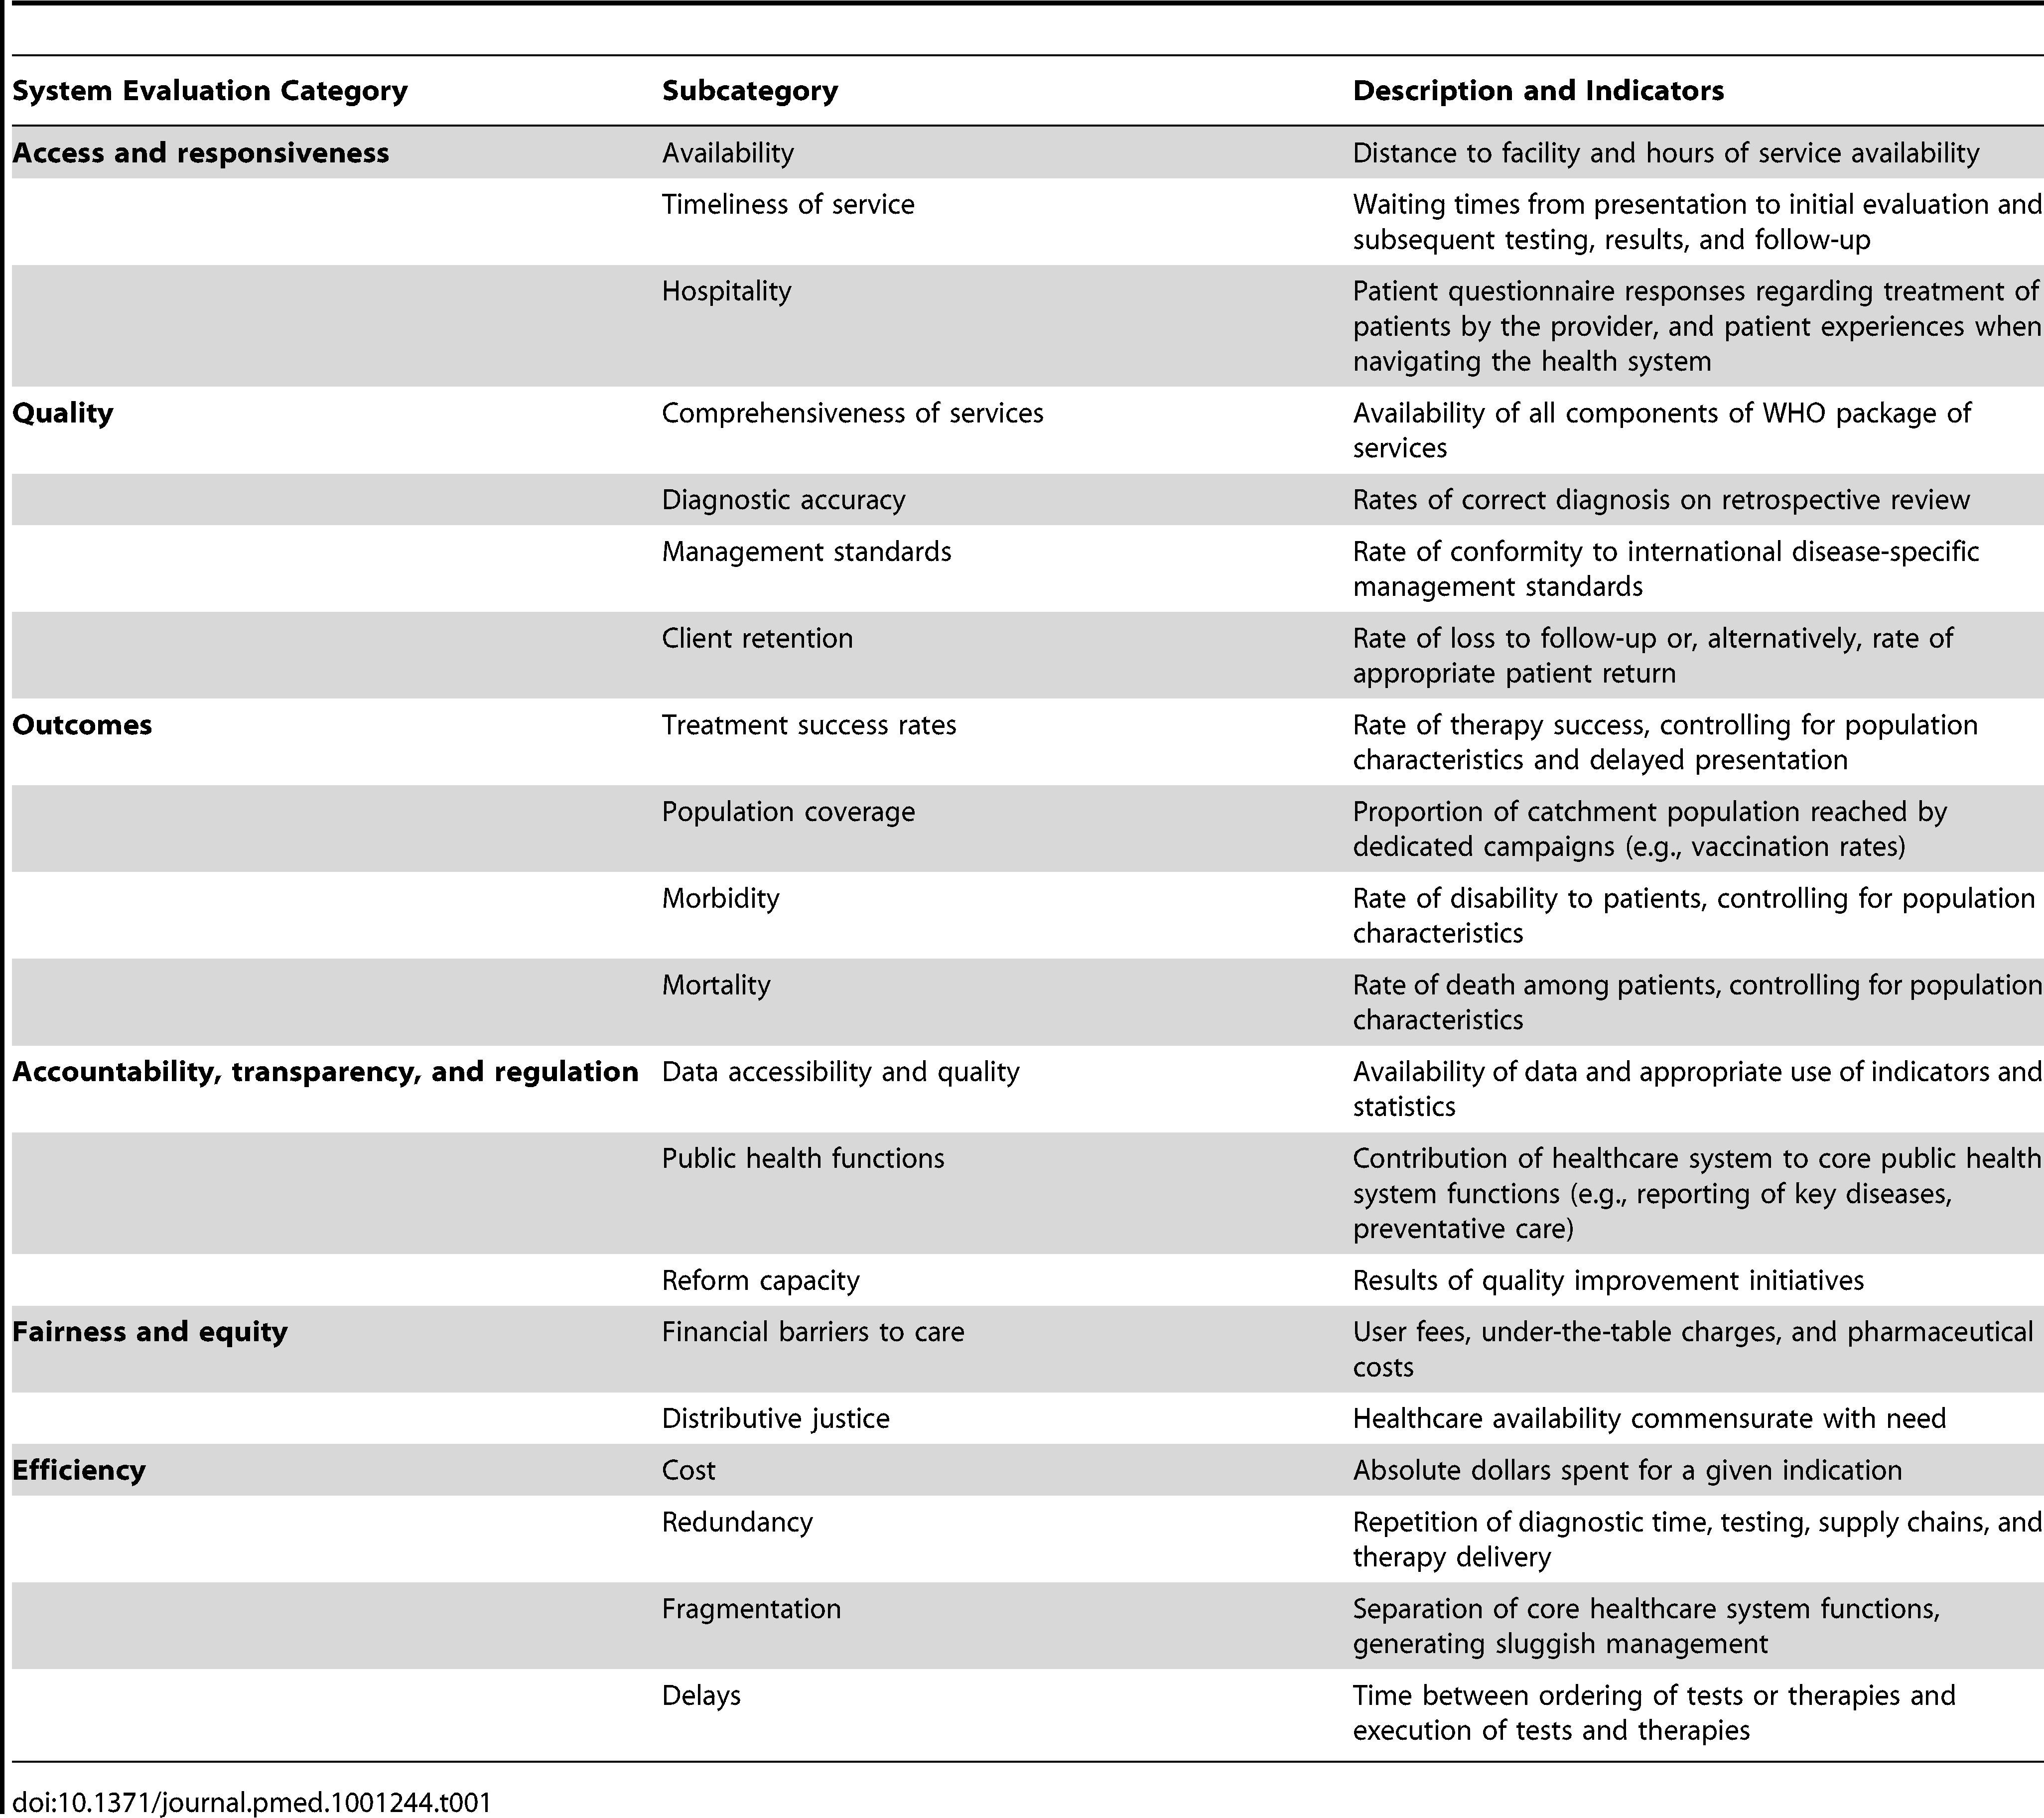 WHO health system themes: data organization categories, subcategories, and indicators used.